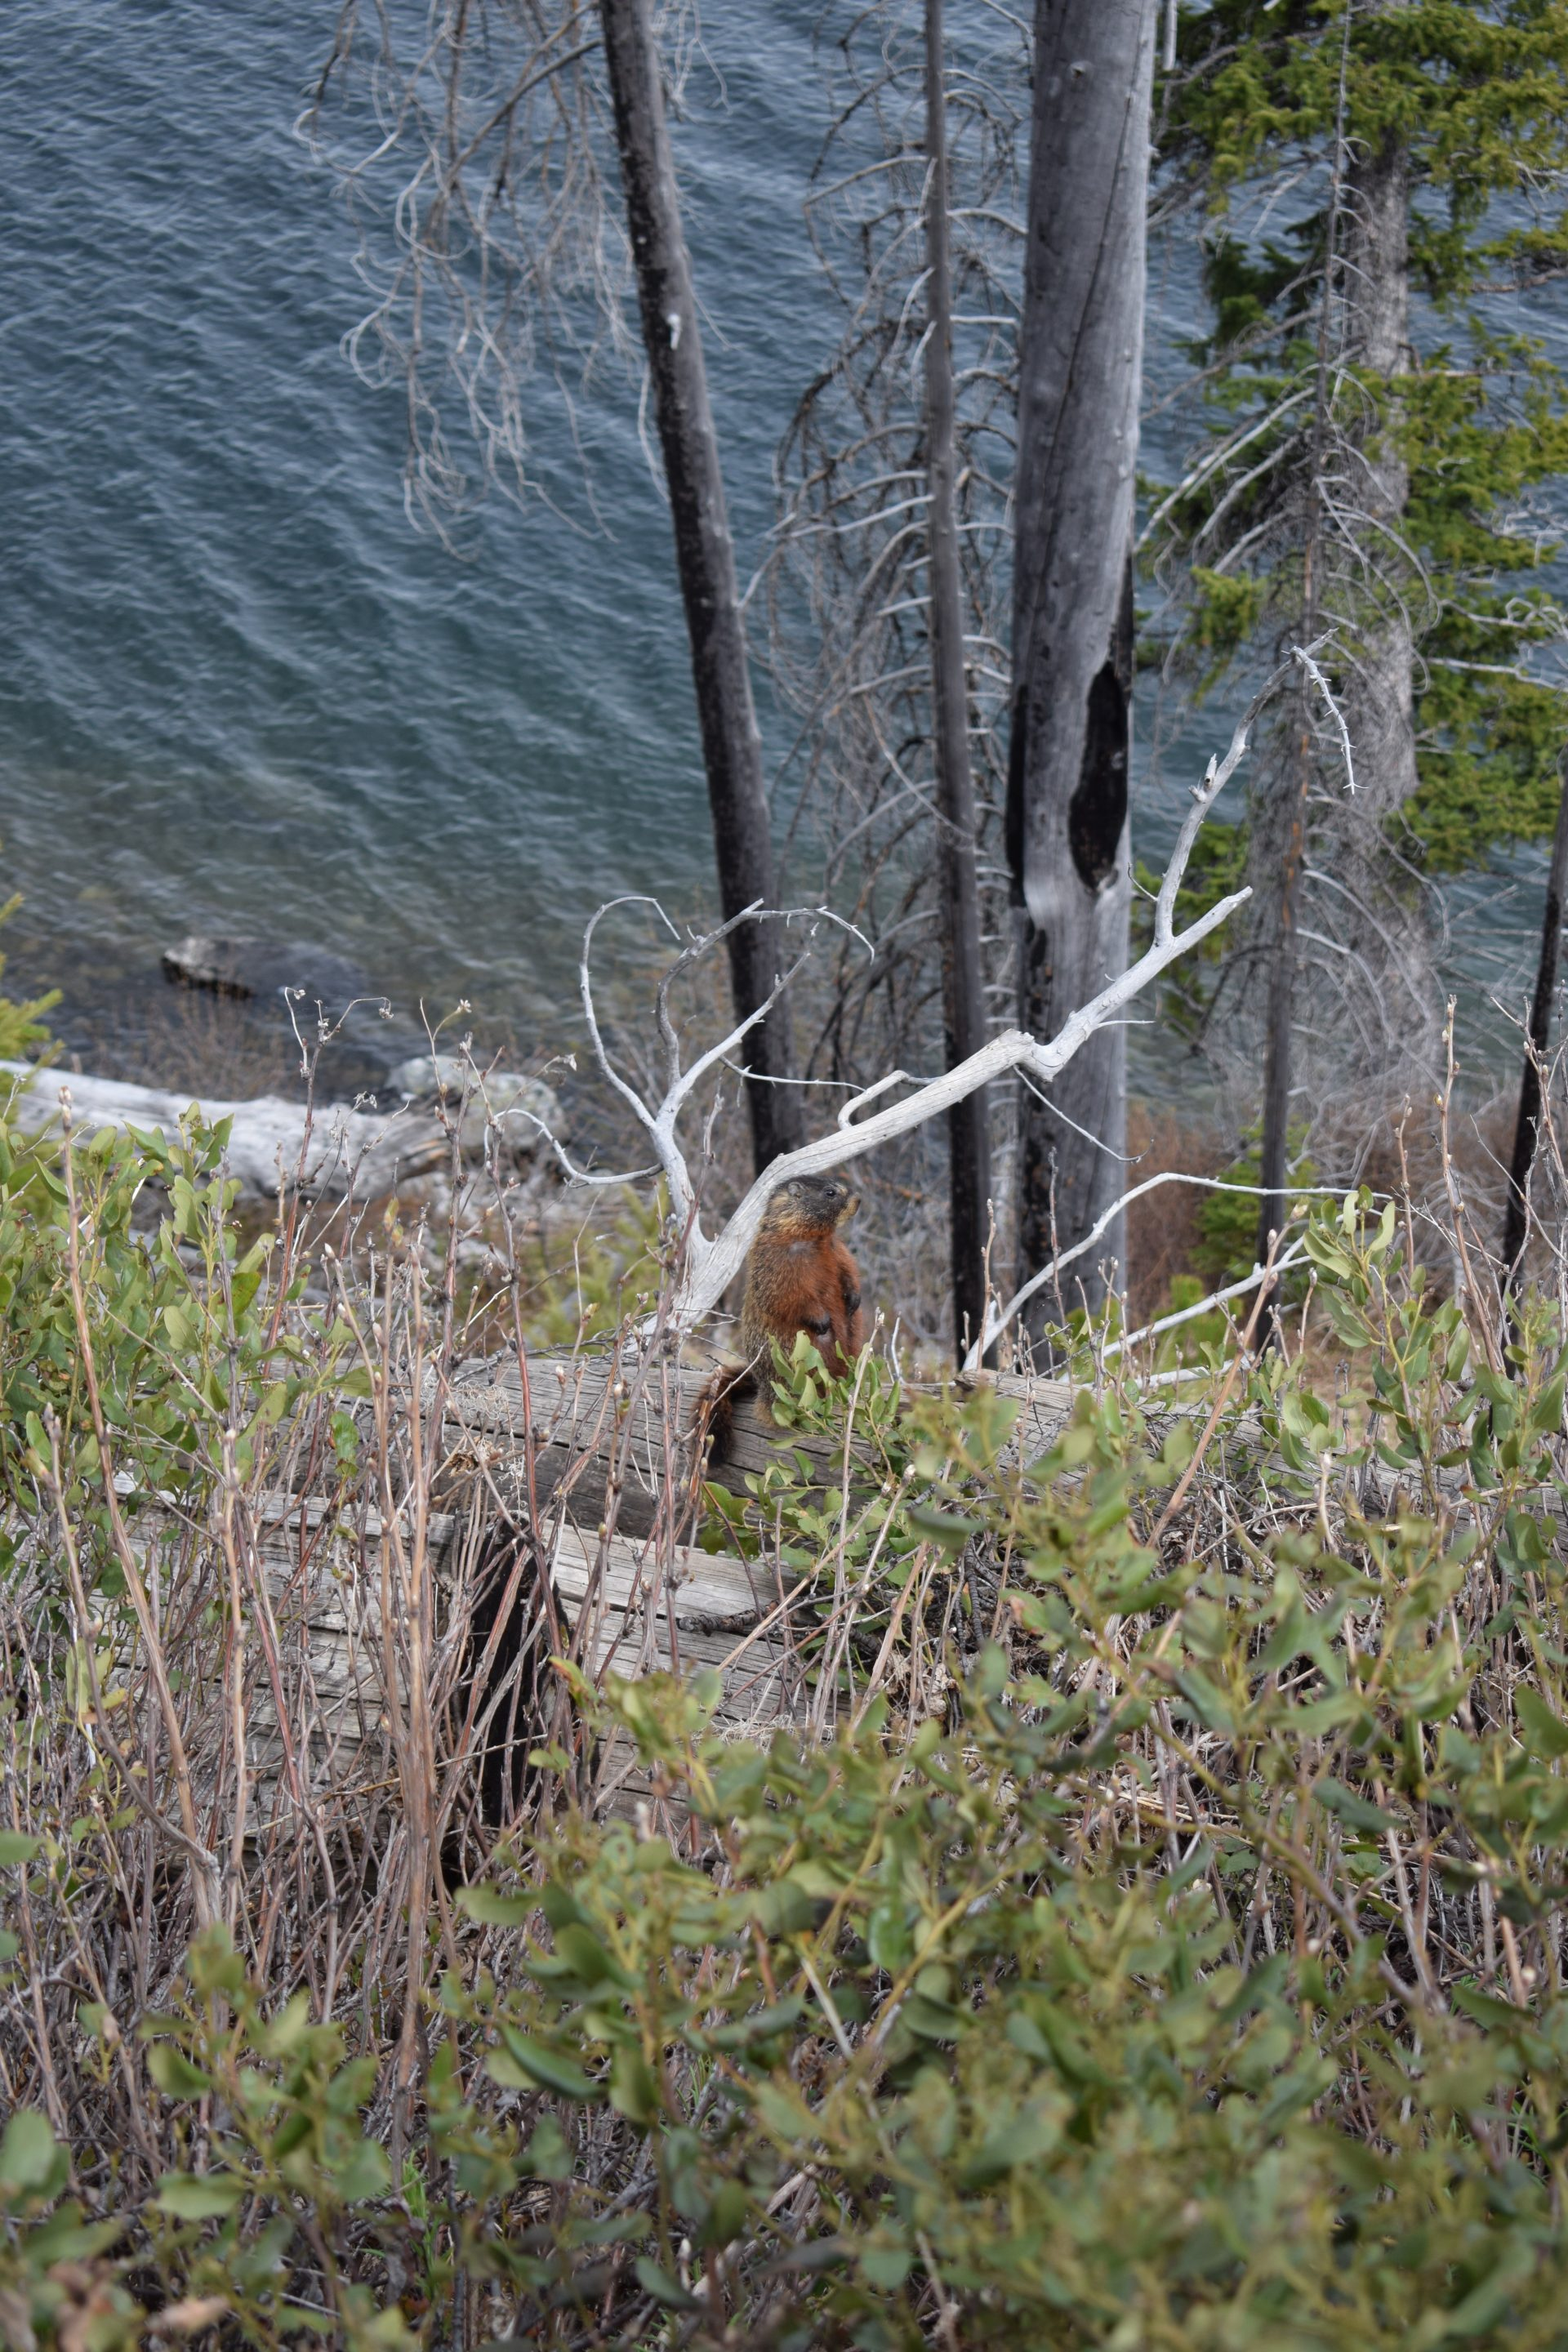 A marmot that is difficult to see in the underbrush next to a shoreline and trees